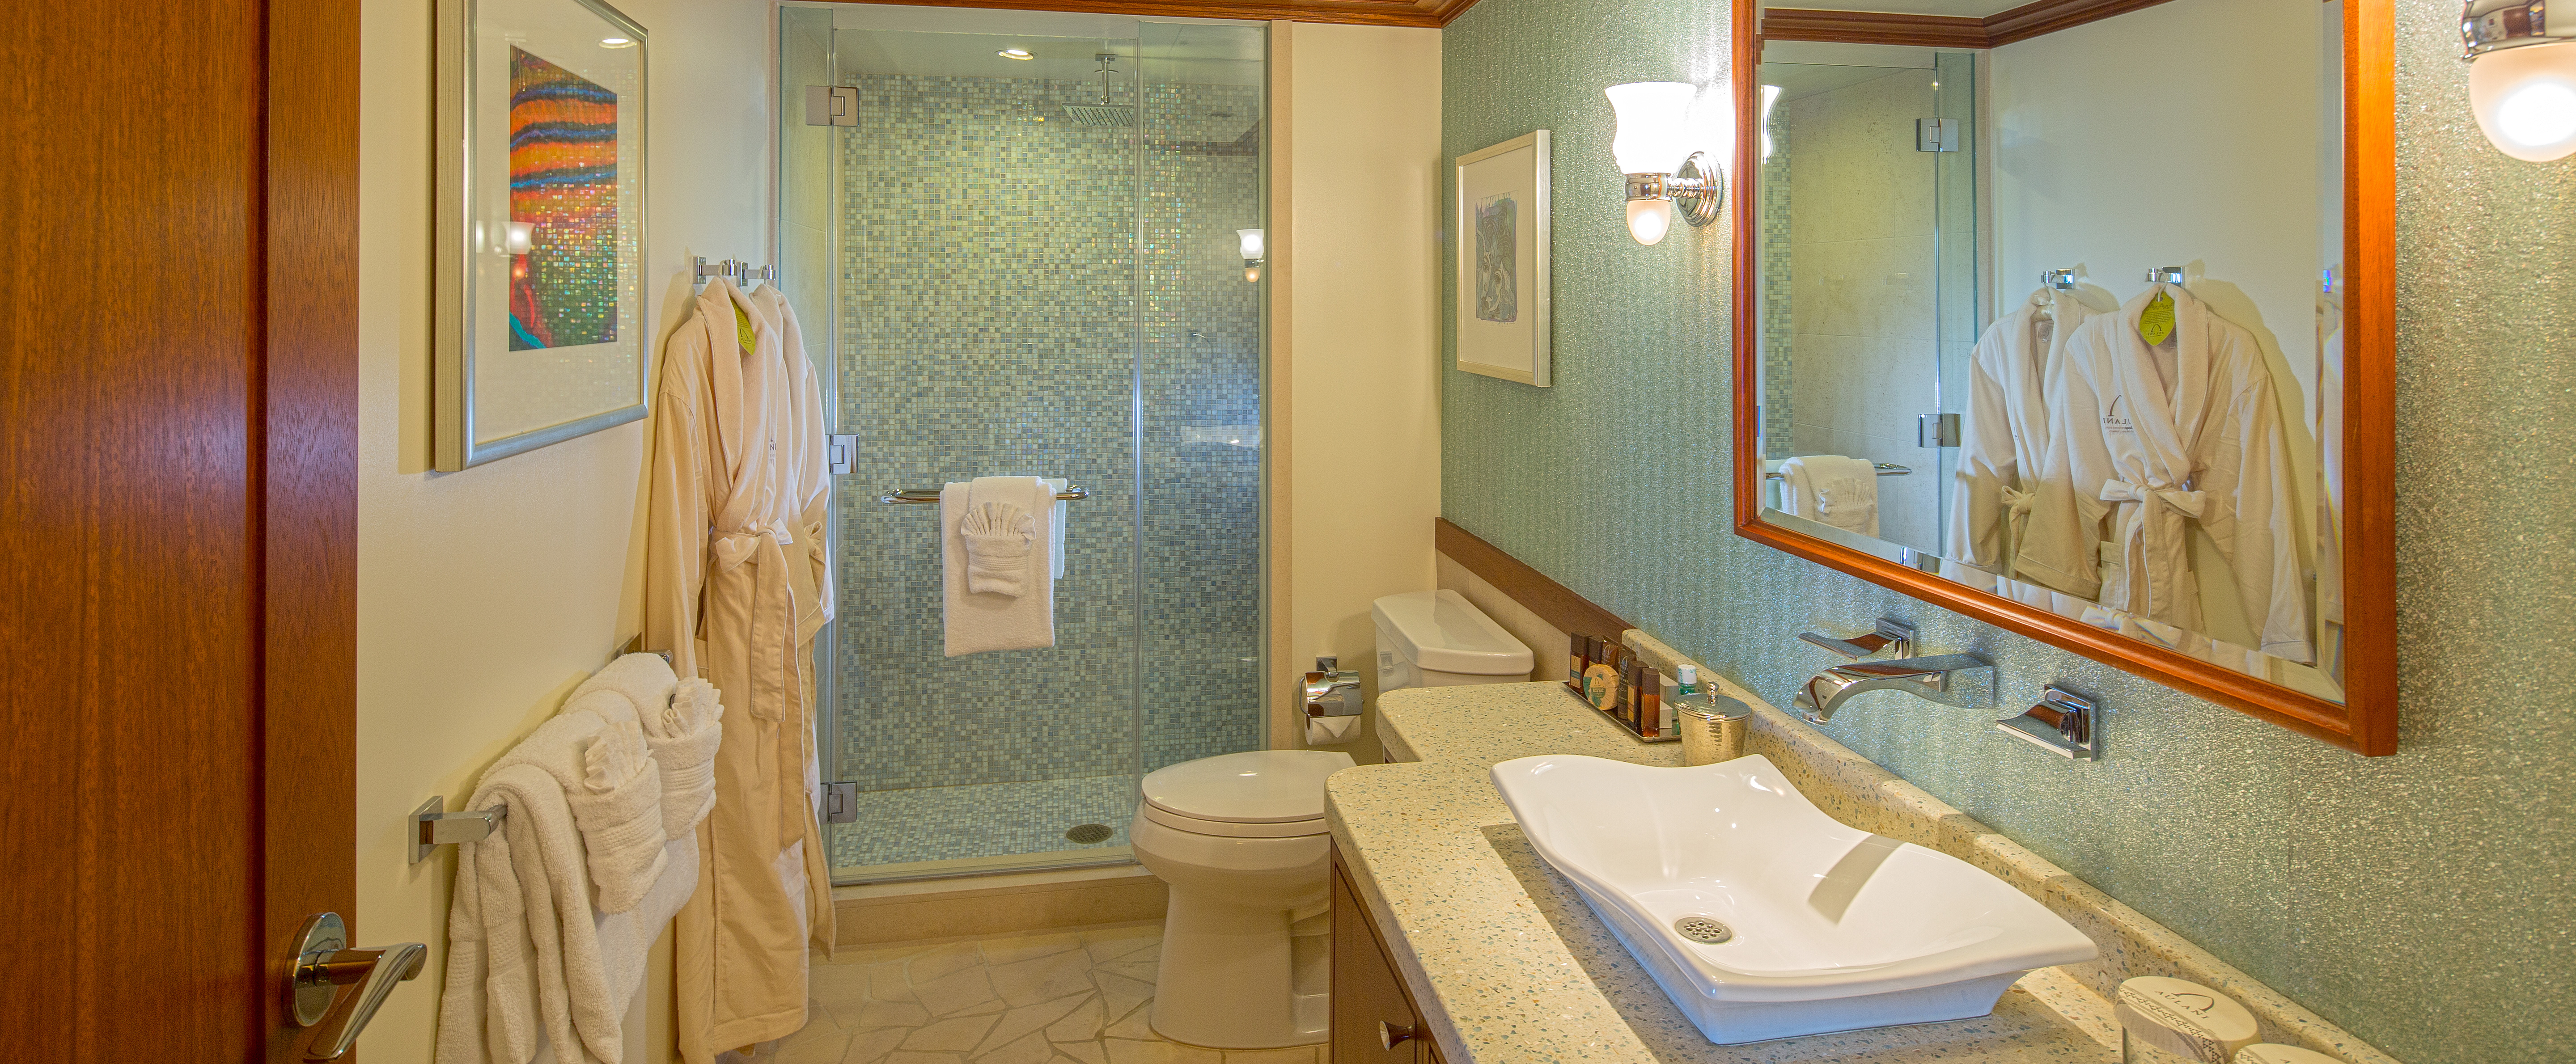 The bathroom in a deluxe 1-Bedroom Suite includes tile walls, stone countertops and walk in shower